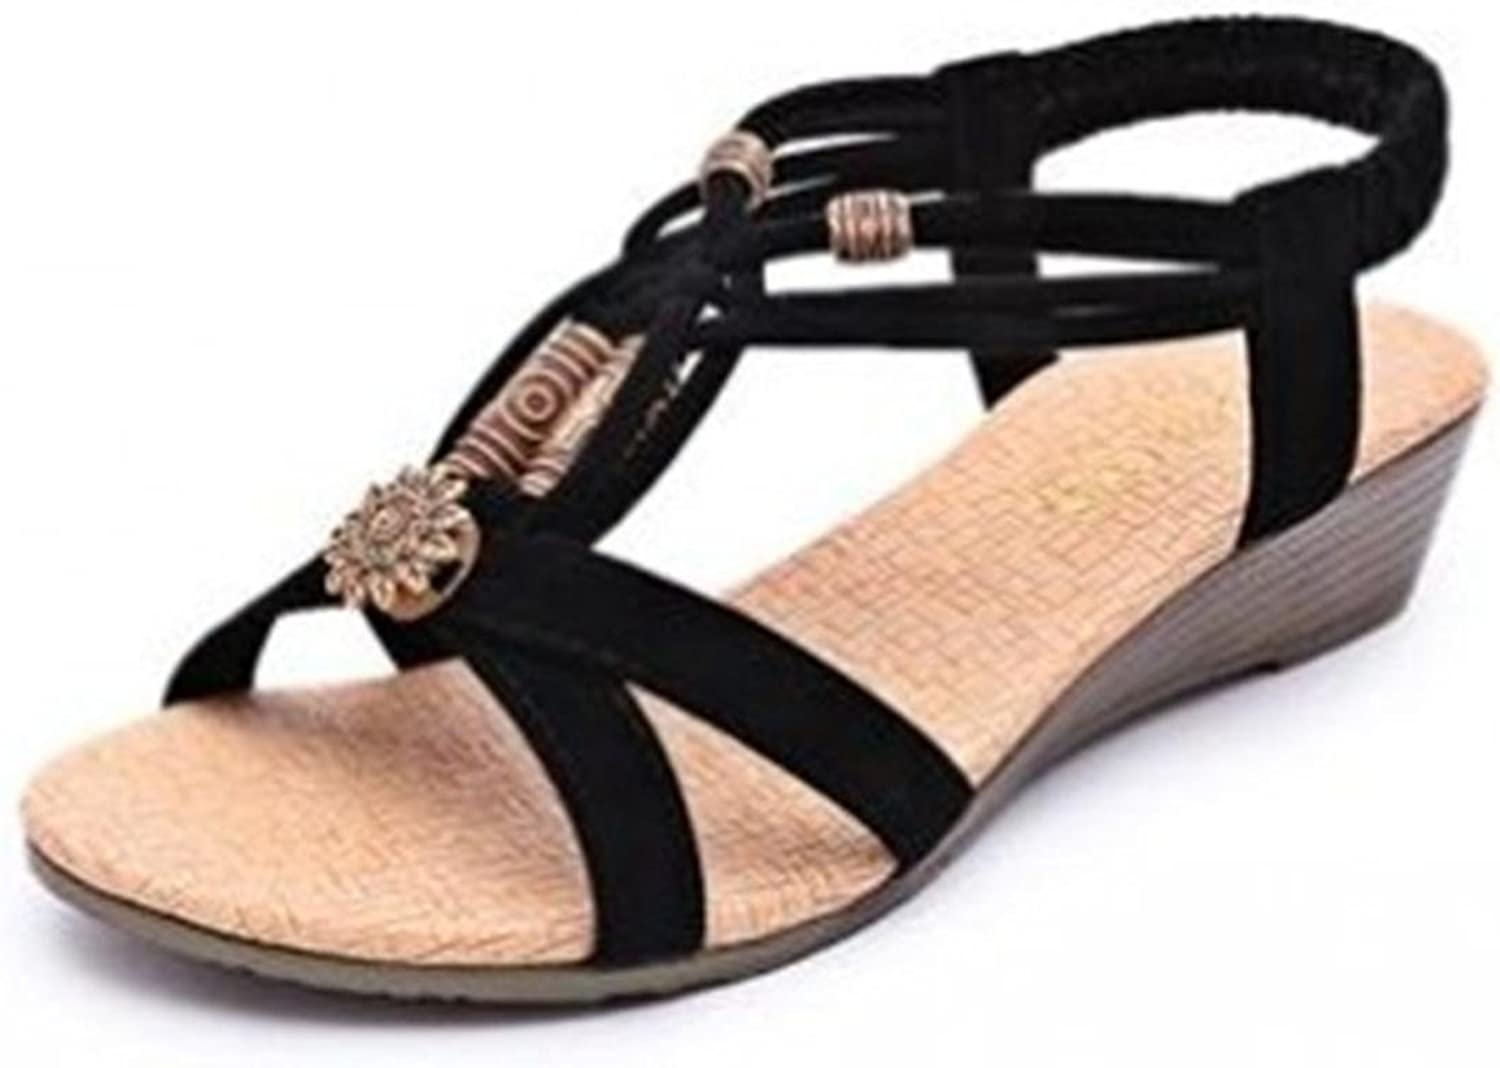 Lh yu Women Sandals Women Summer Platform Wedge Sandals Flat shoes with Ankle Strap